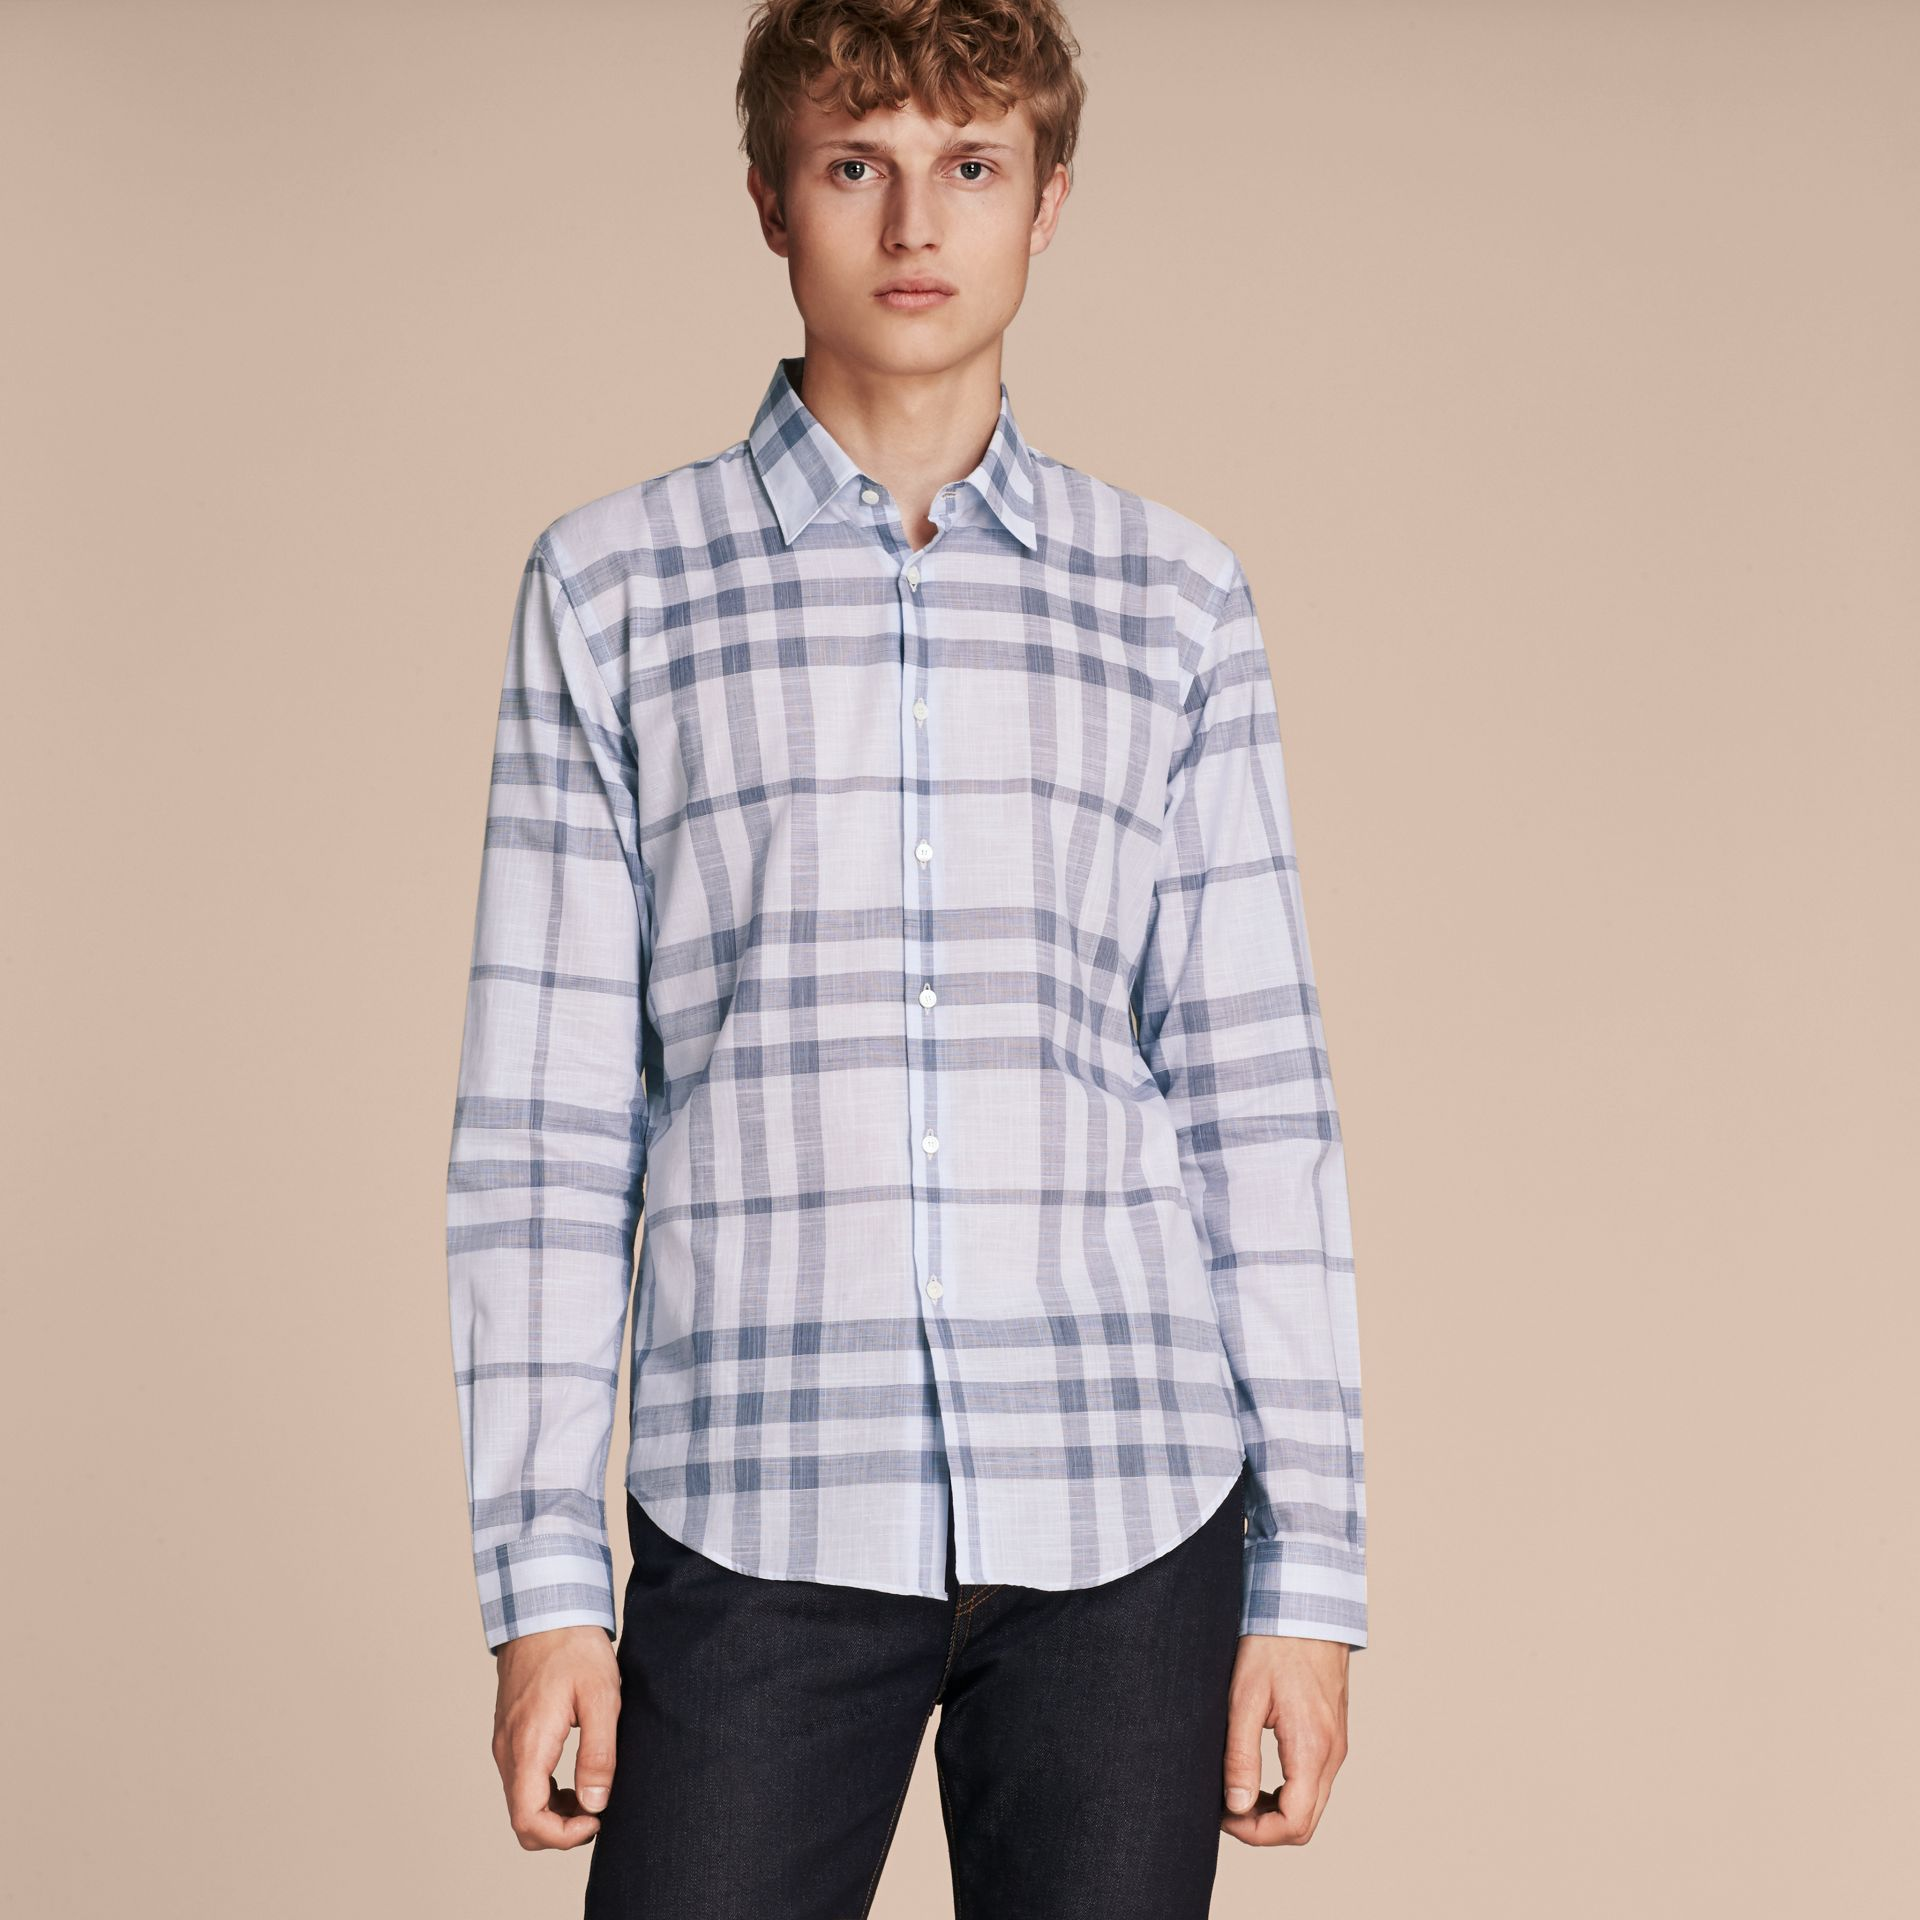 Mineral blue Check Cotton Chambray Shirt Mineral Blue - gallery image 6